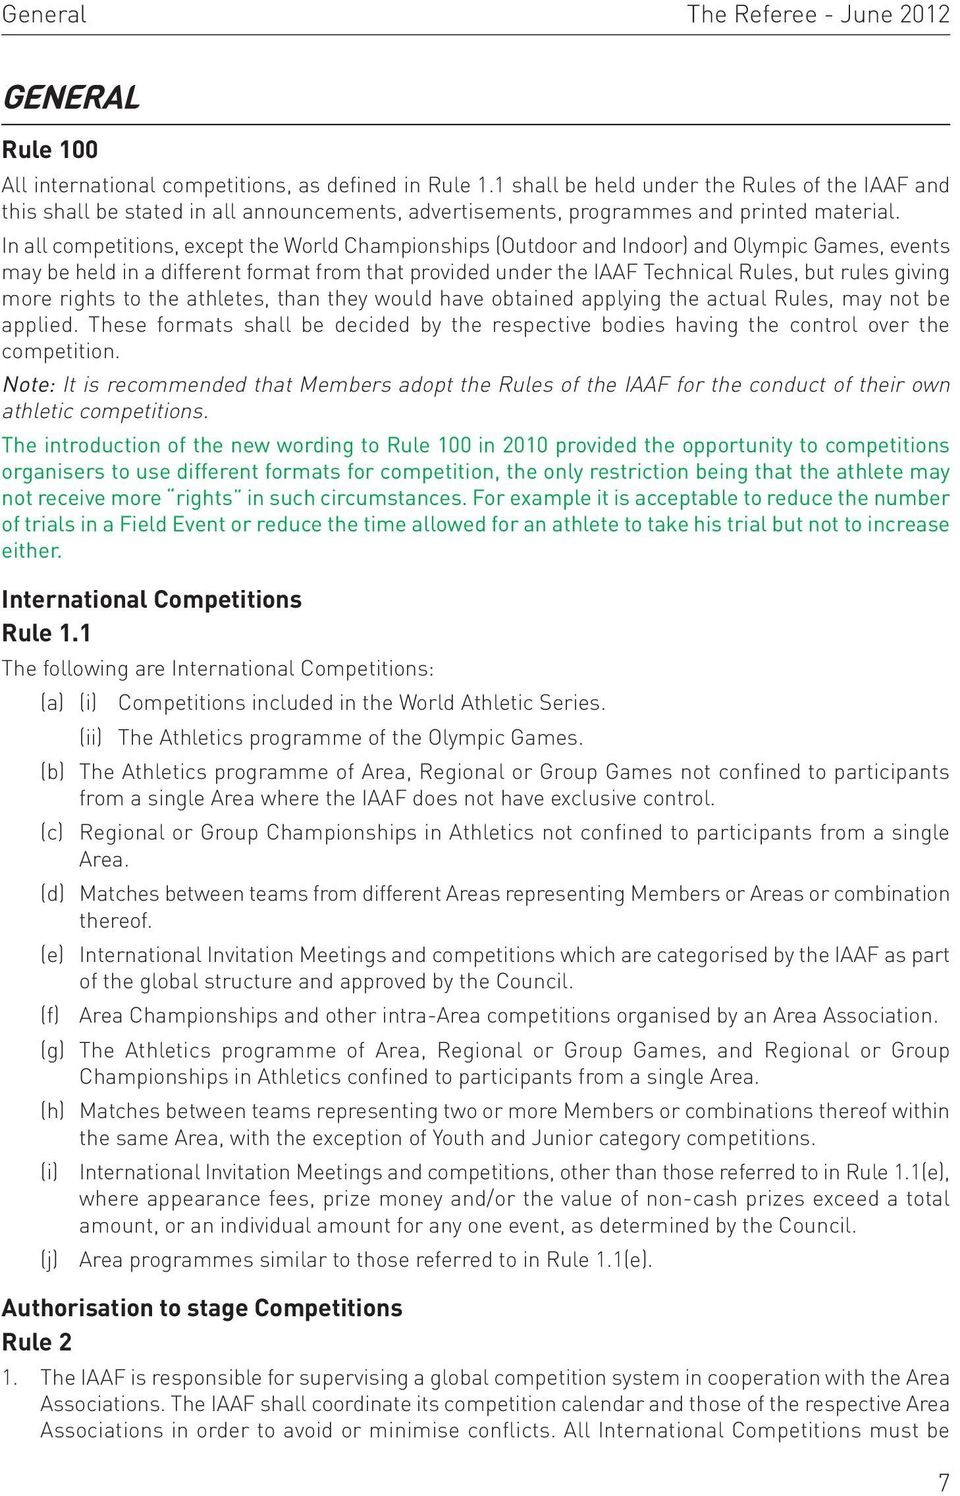 In all competitions, except the World Championships (Outdoor and Indoor) and Olympic Games, events may be held in a different format from that provided under the IAAF Technical Rules, but rules